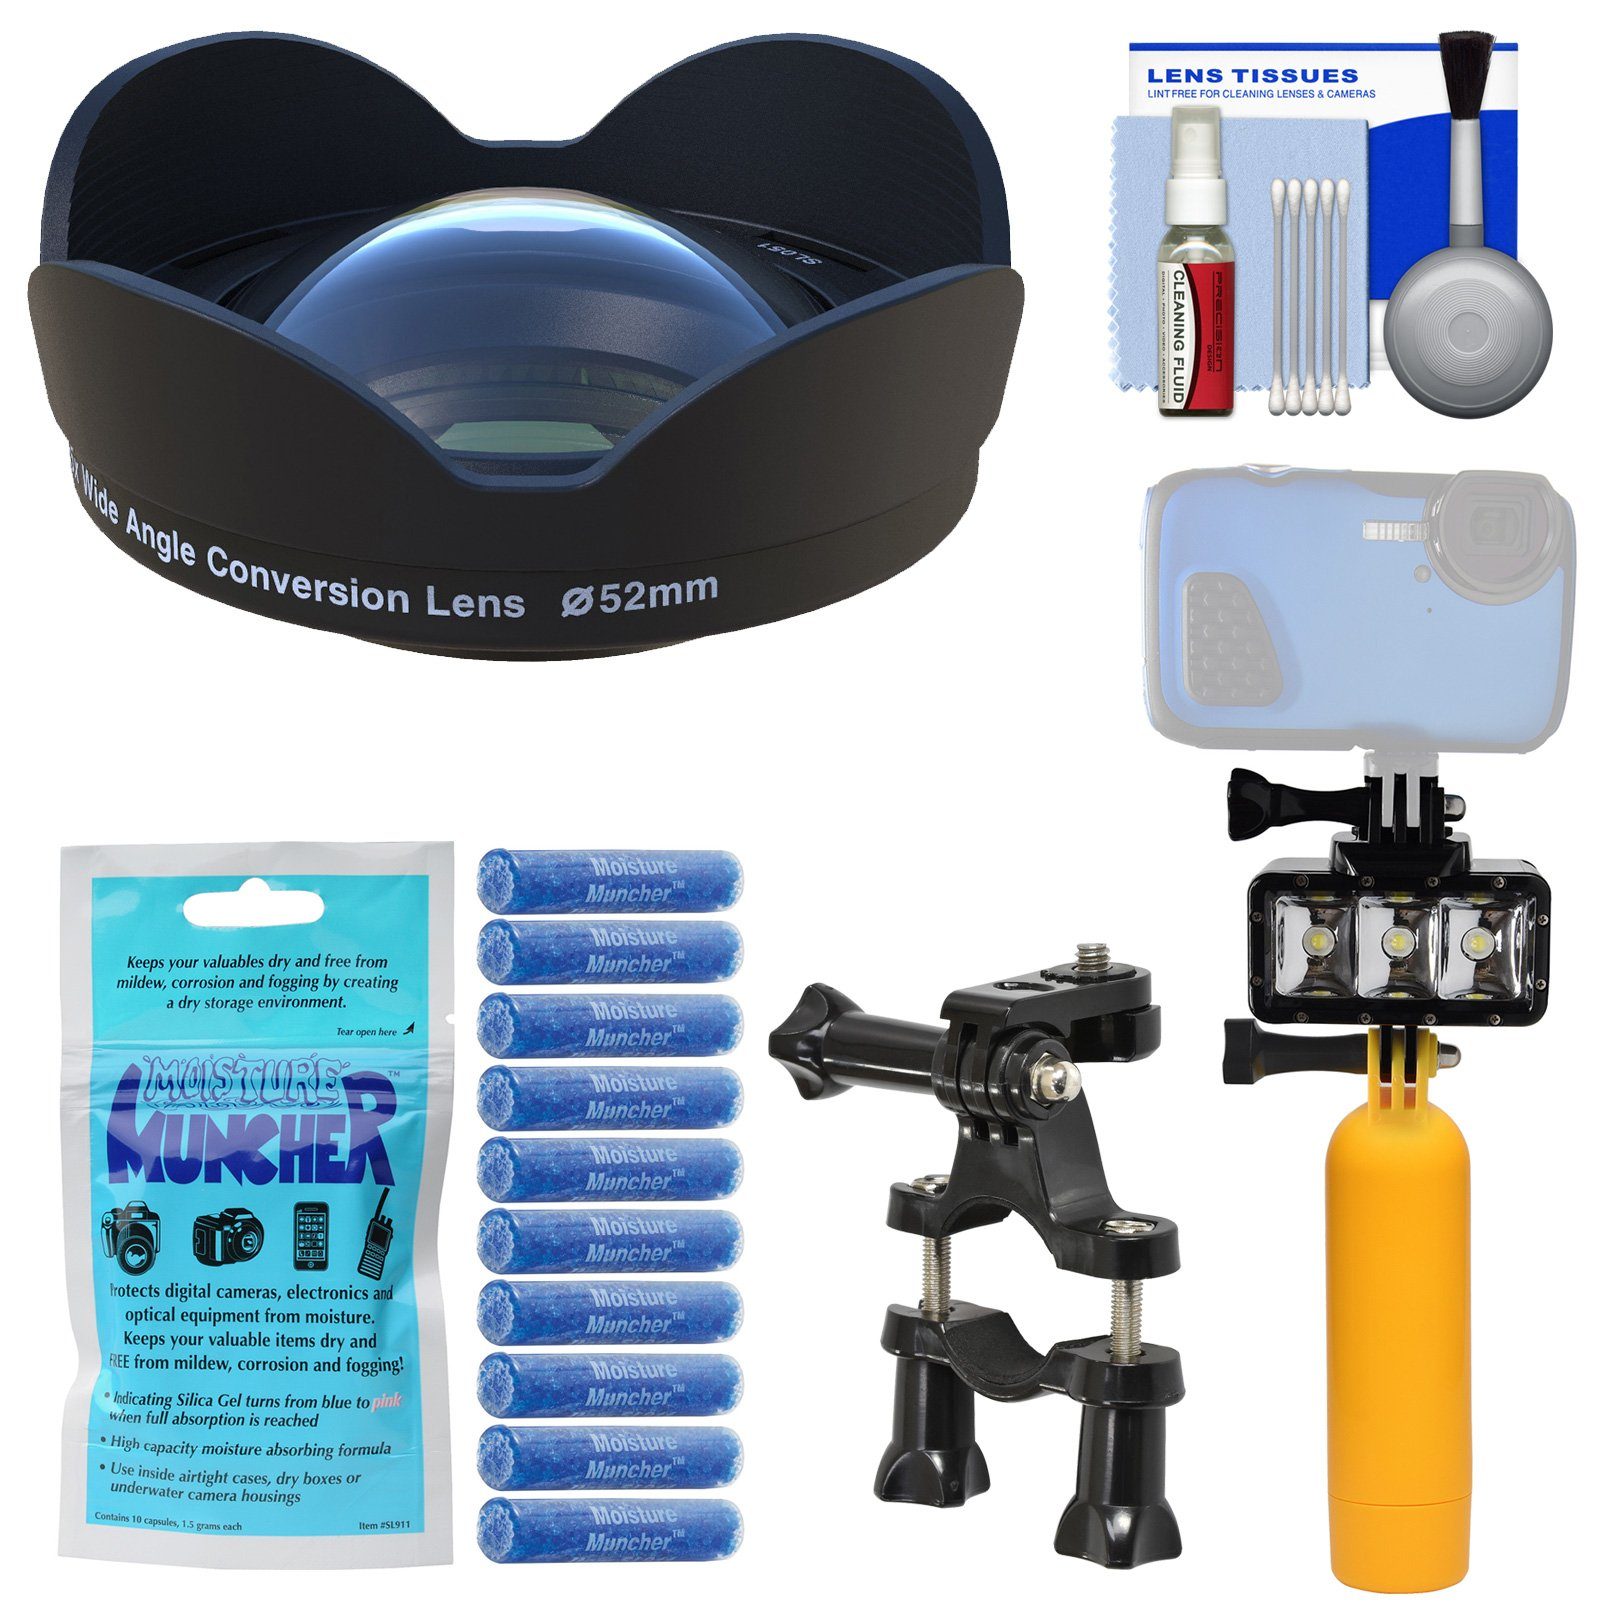 SeaLife SL051 0.75x Wide Angle Conversion Lens for DC2000 Camera & Adapter Ring + Silica Gel + Underwater Video Light + Buoy Handle + Bike Mount Kit by SeaLife